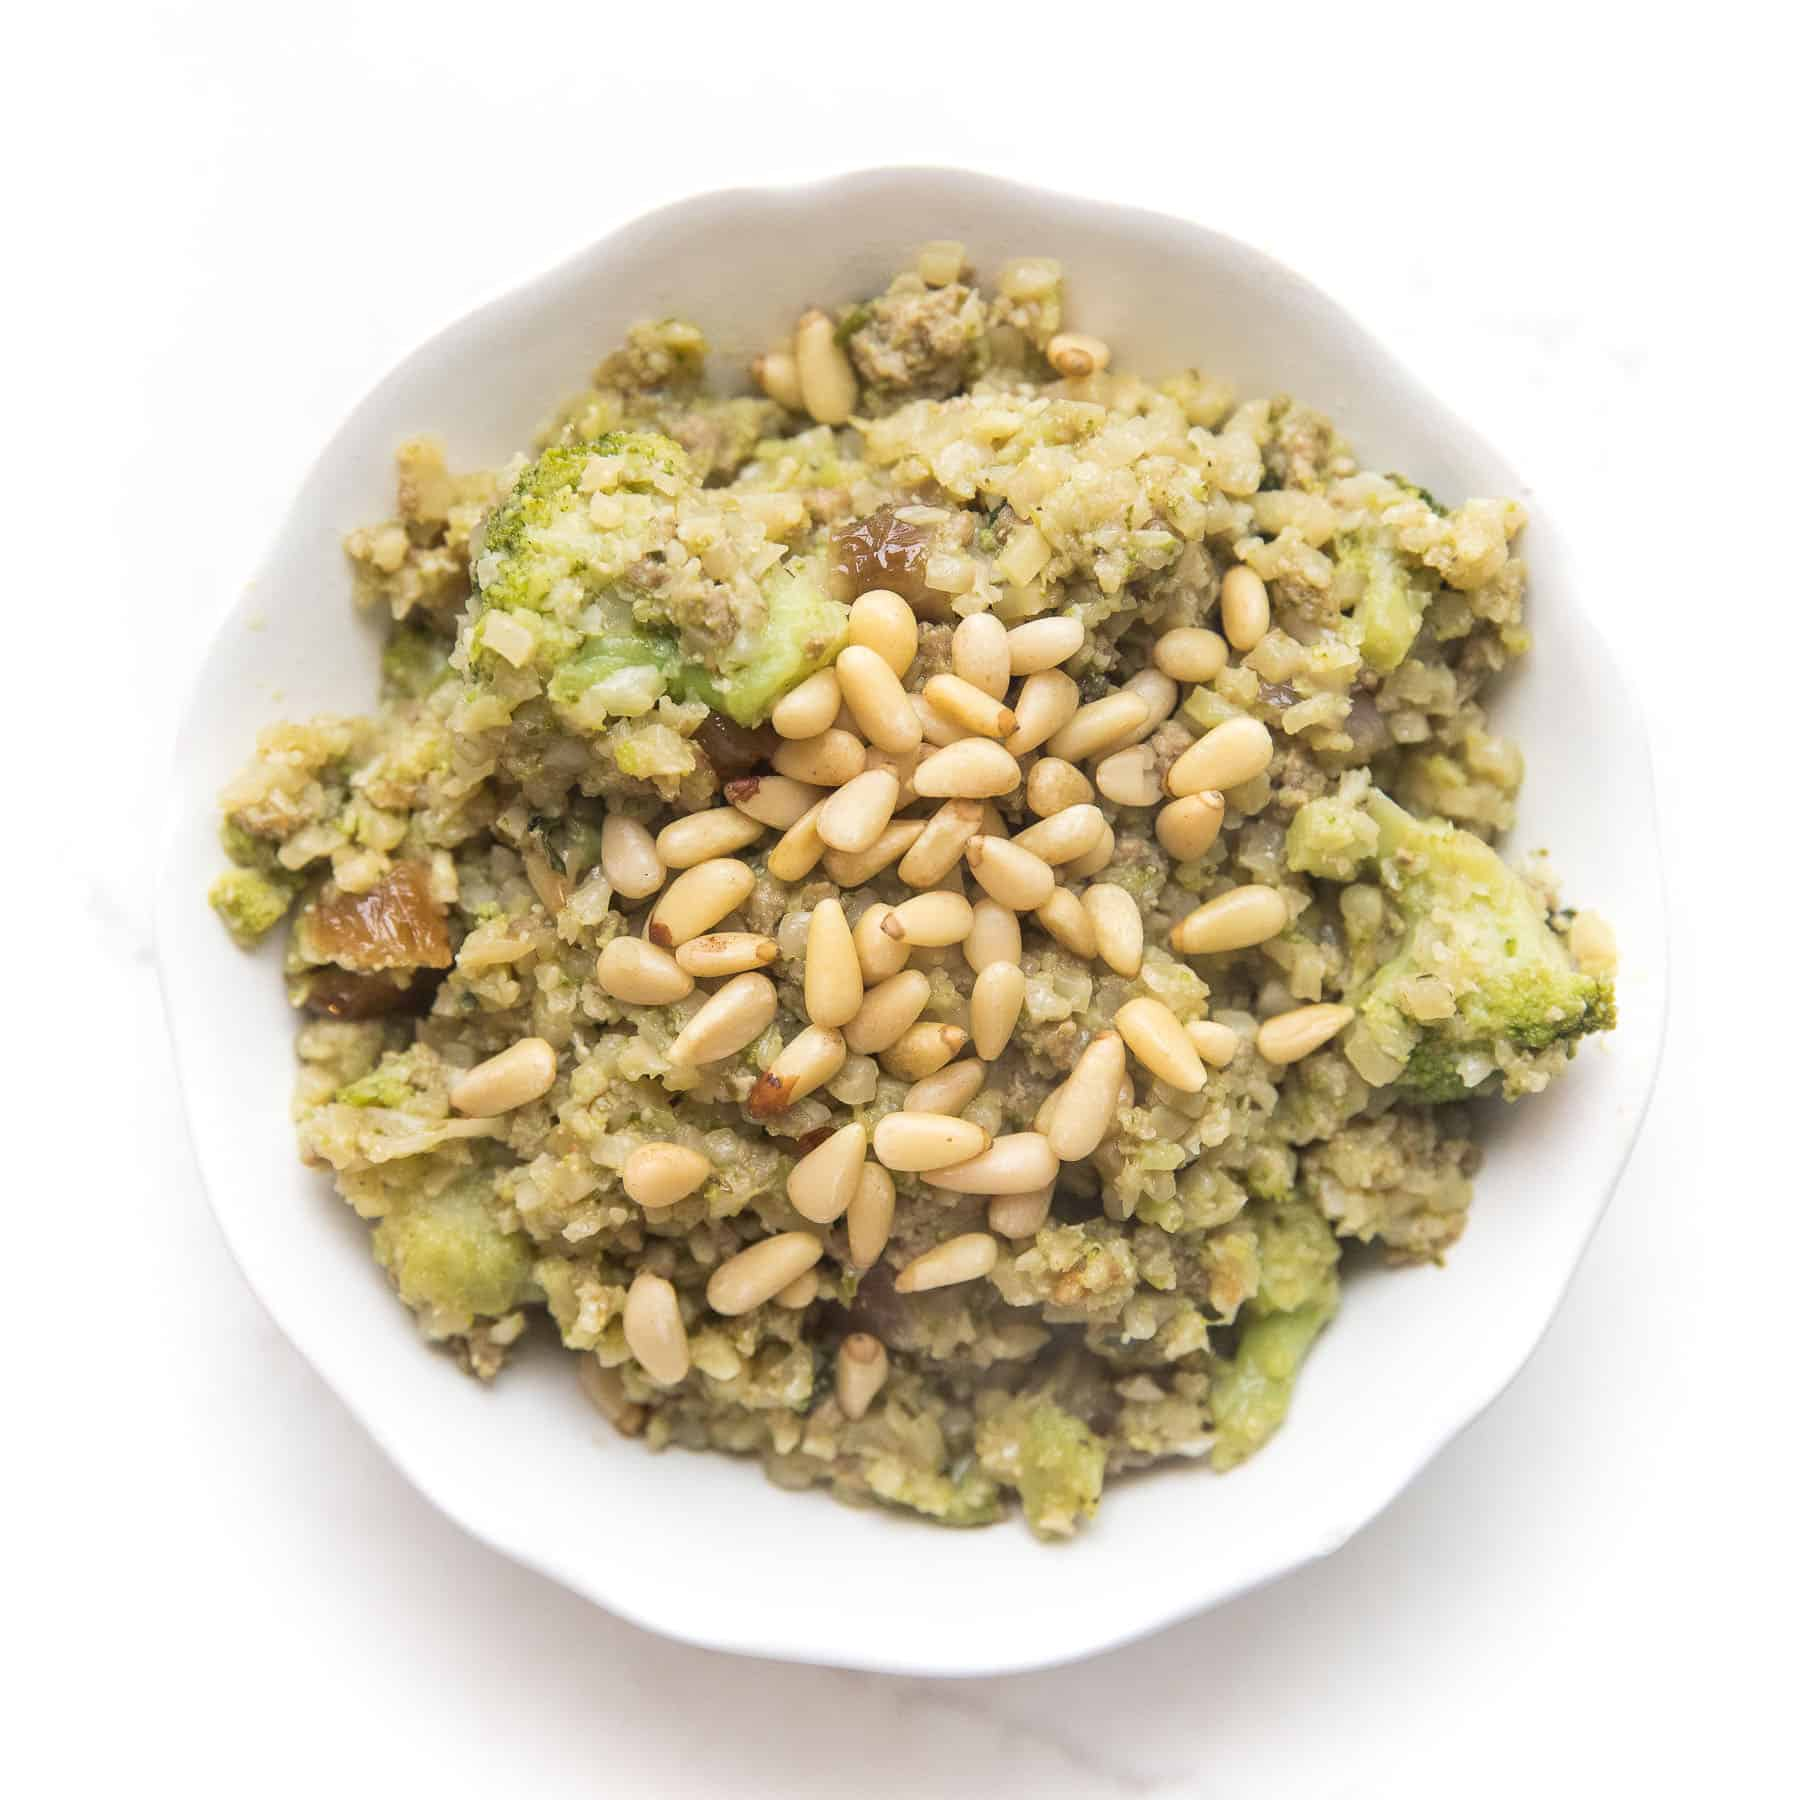 pesto cauliflower rice, broccoli, meatballs and pinenuts in a white bowl